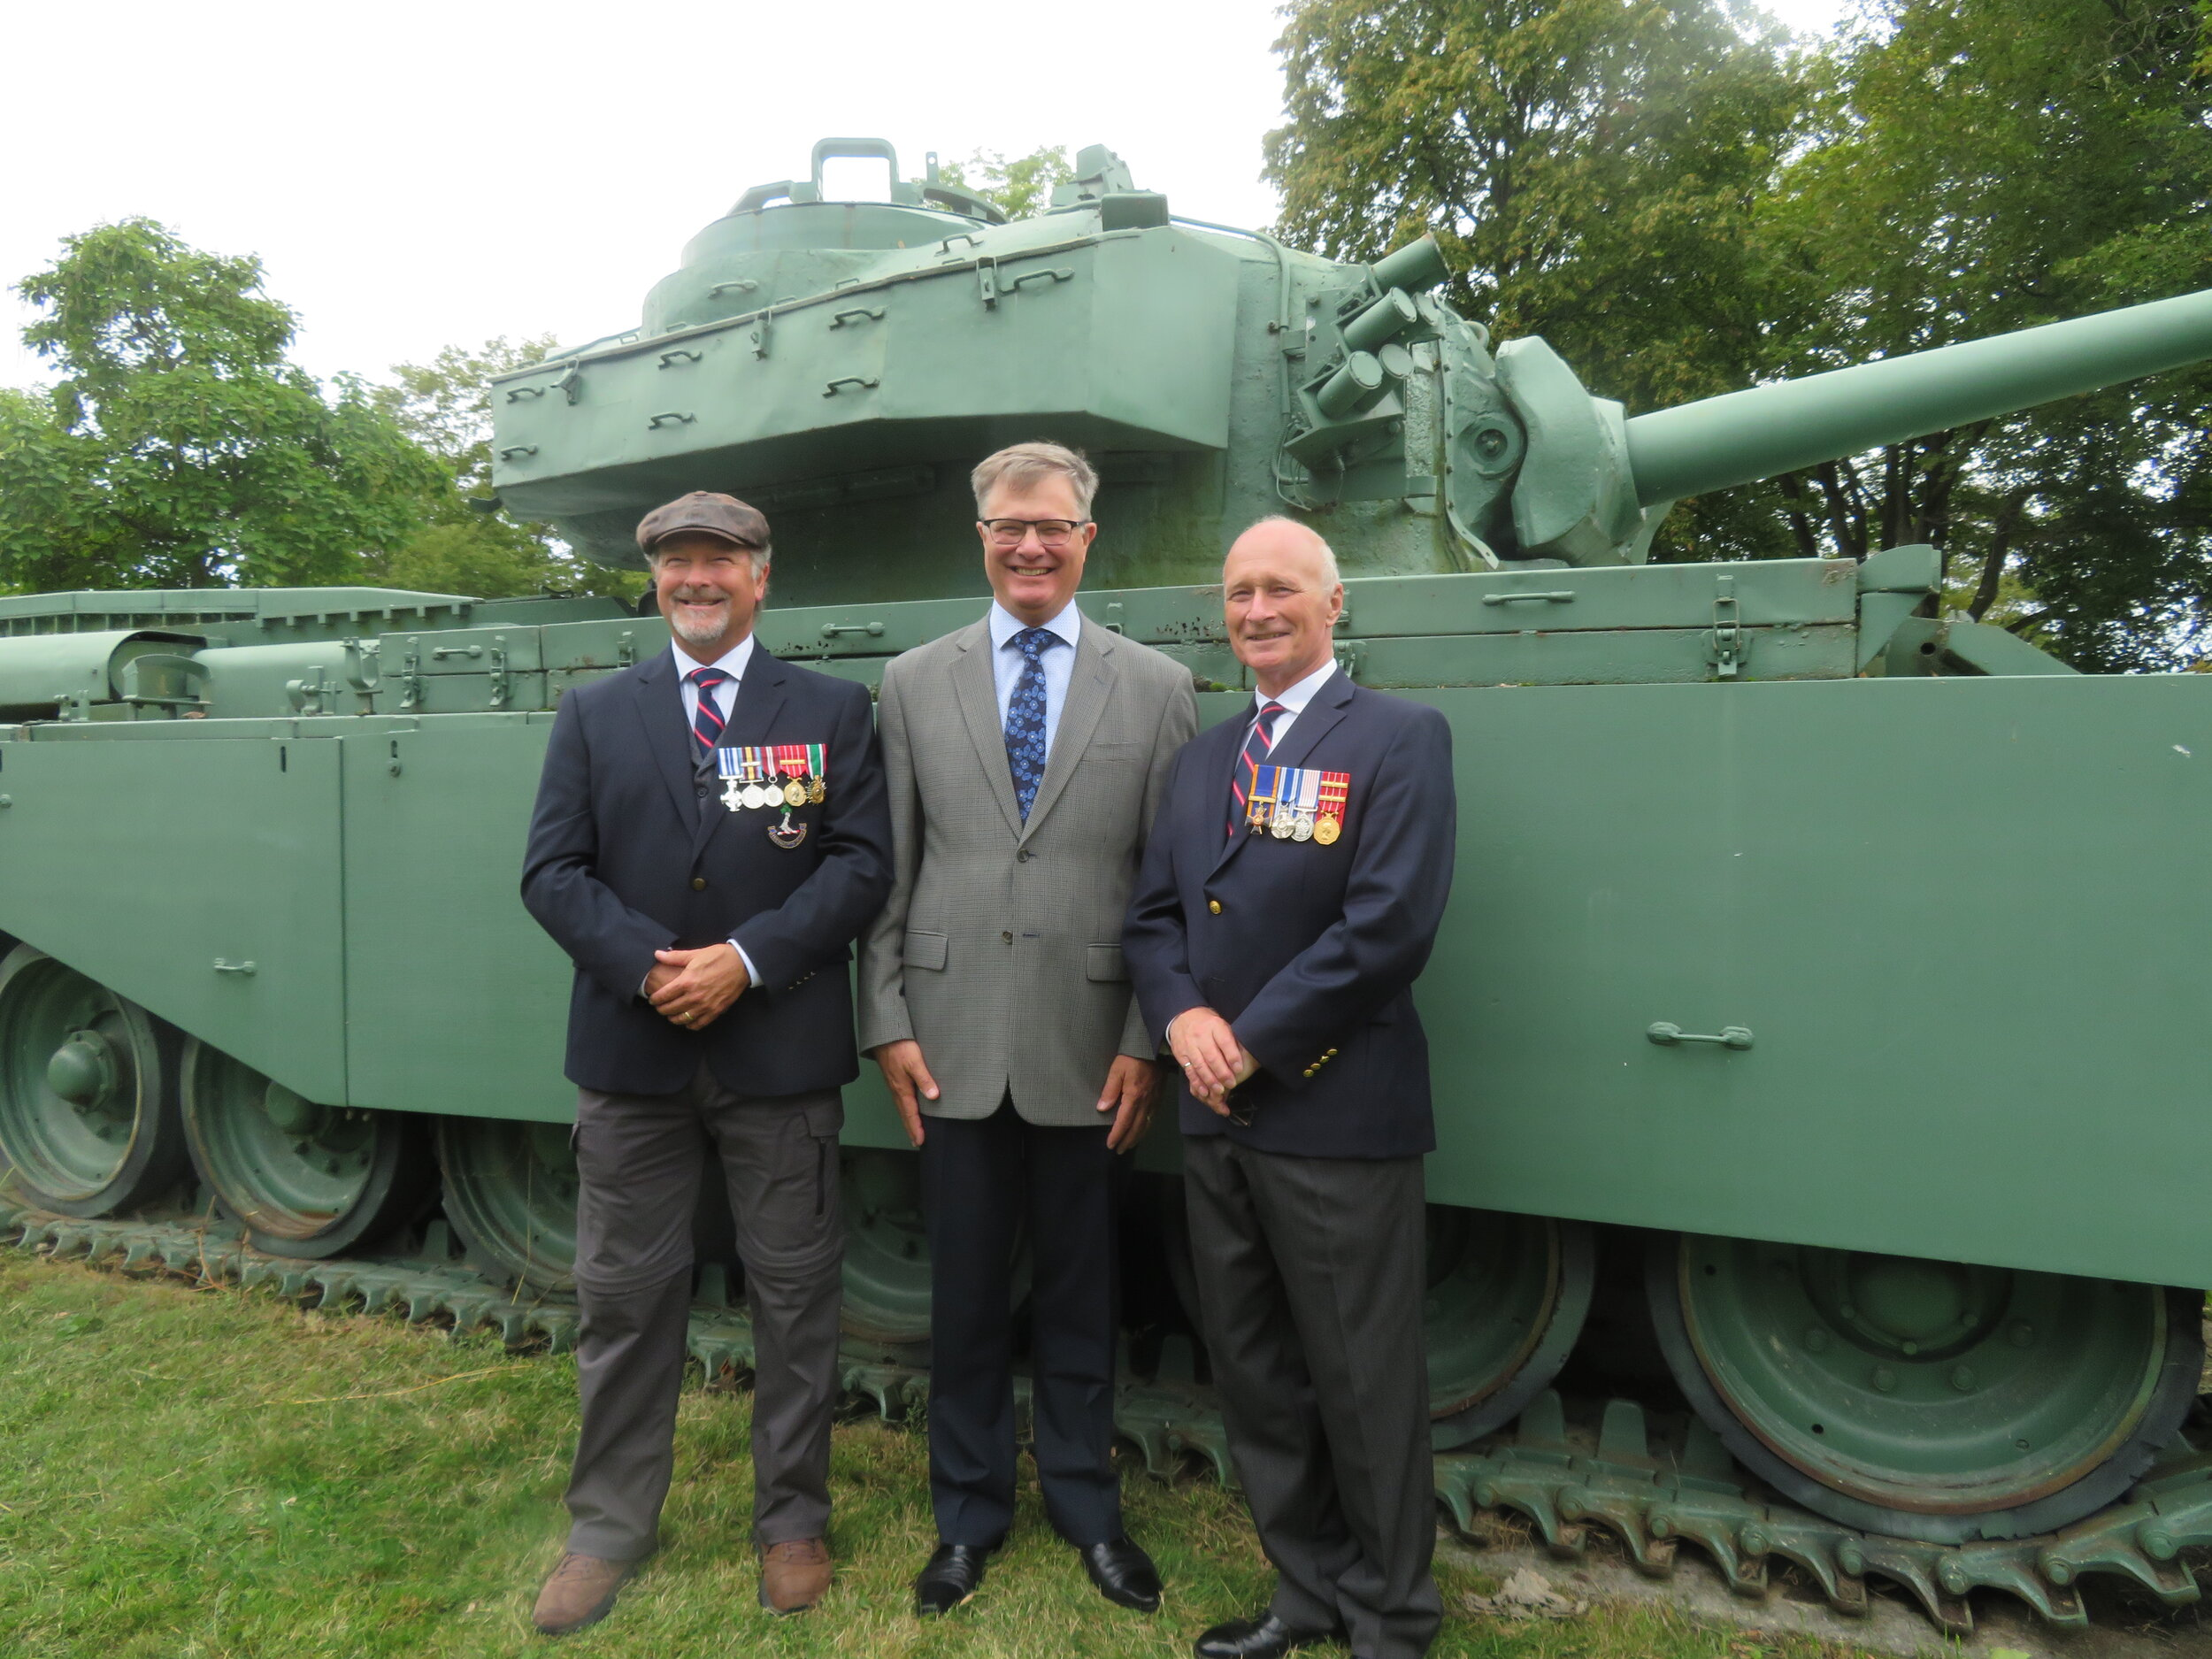 the navy contingent by that tank … the two richards and ian yeates